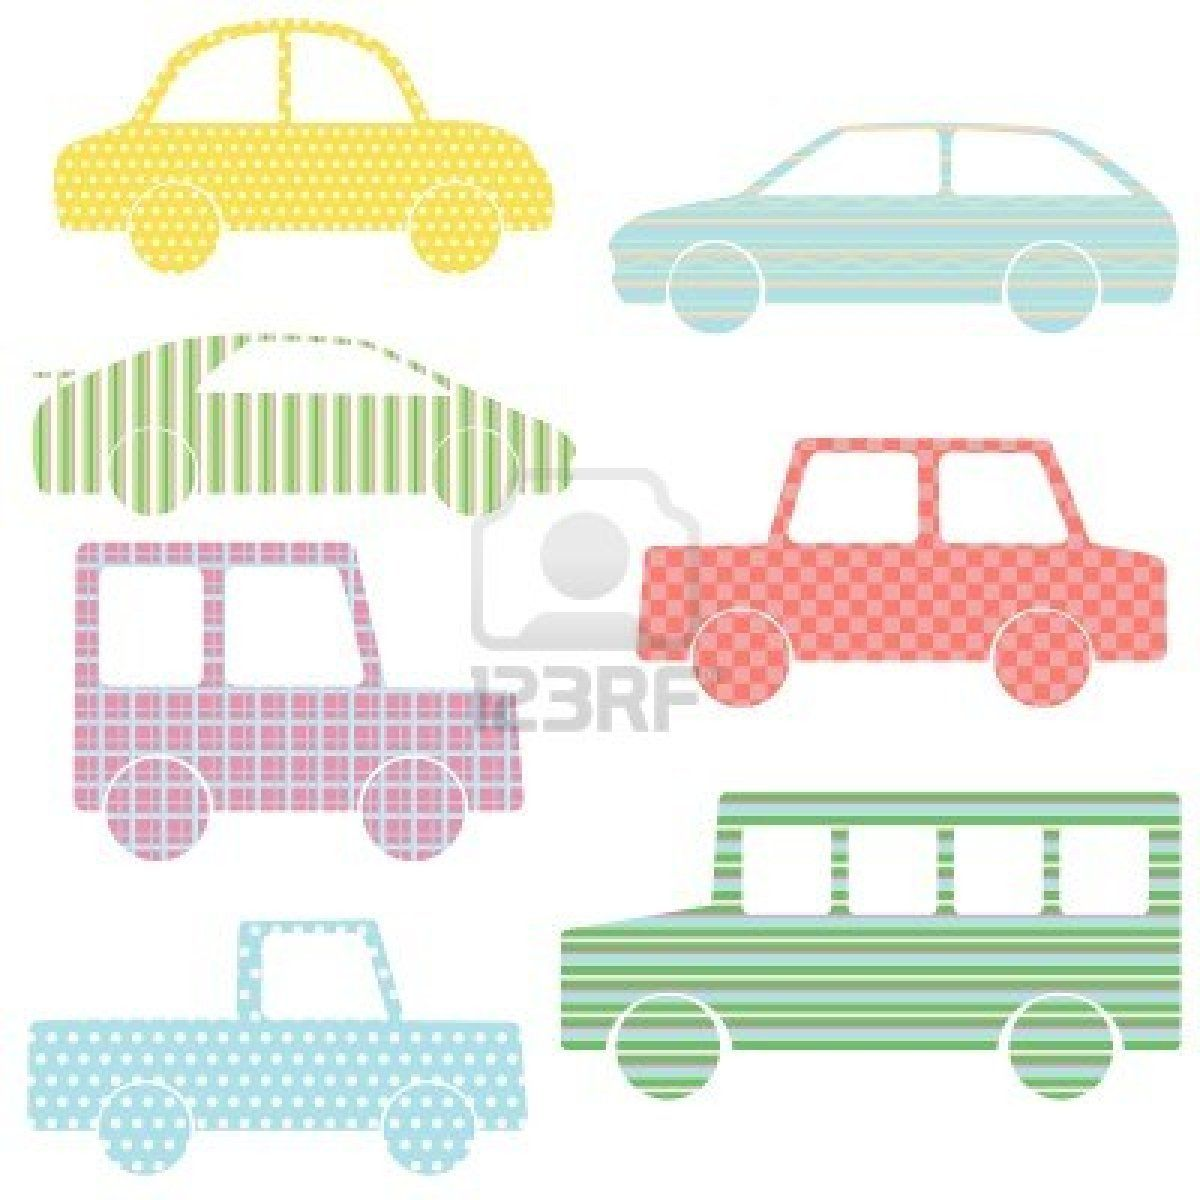 Vector Set Of Car Silhouettes With Simple Patterns Car Silhouette Simple Patterns Applique Templates